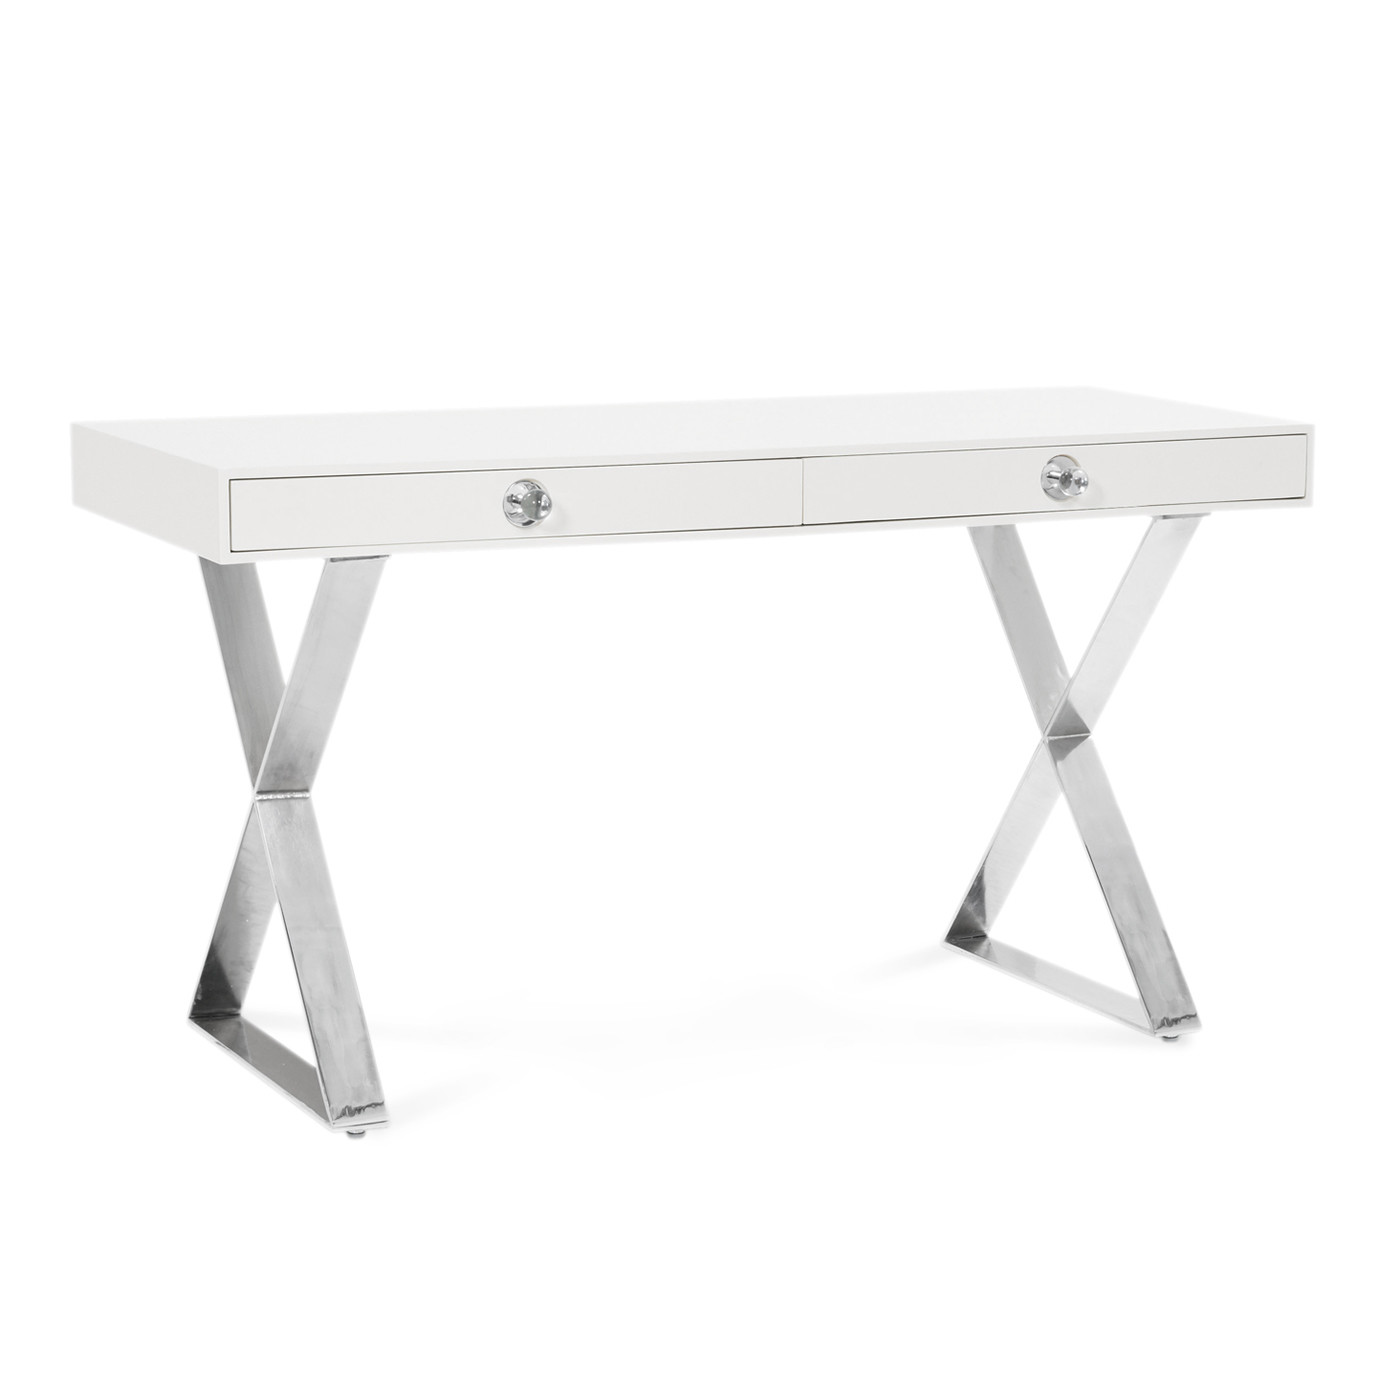 Channing Desk | White with Nickel